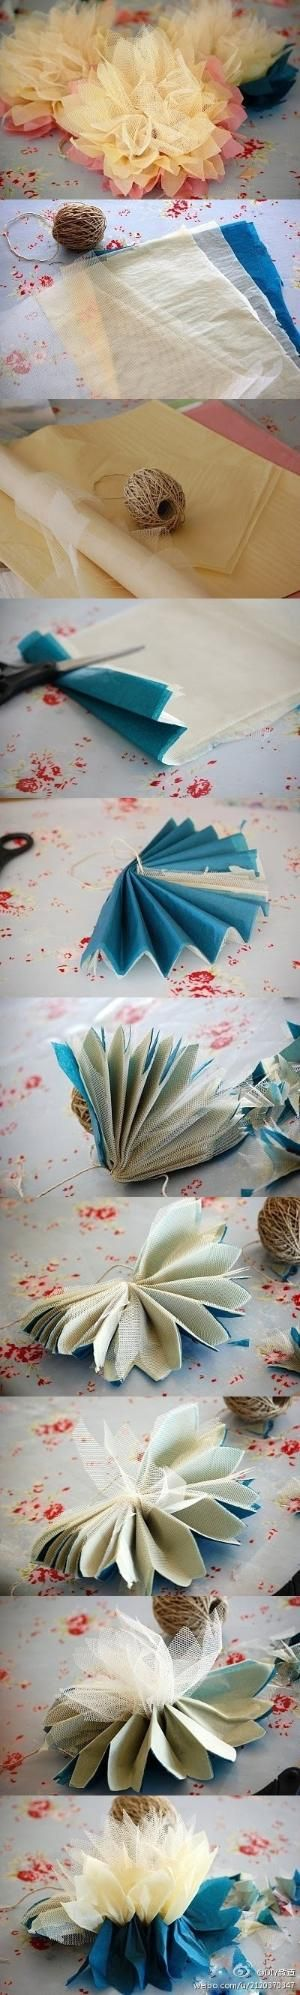 tissue paper lotus flower by Shayla Brown